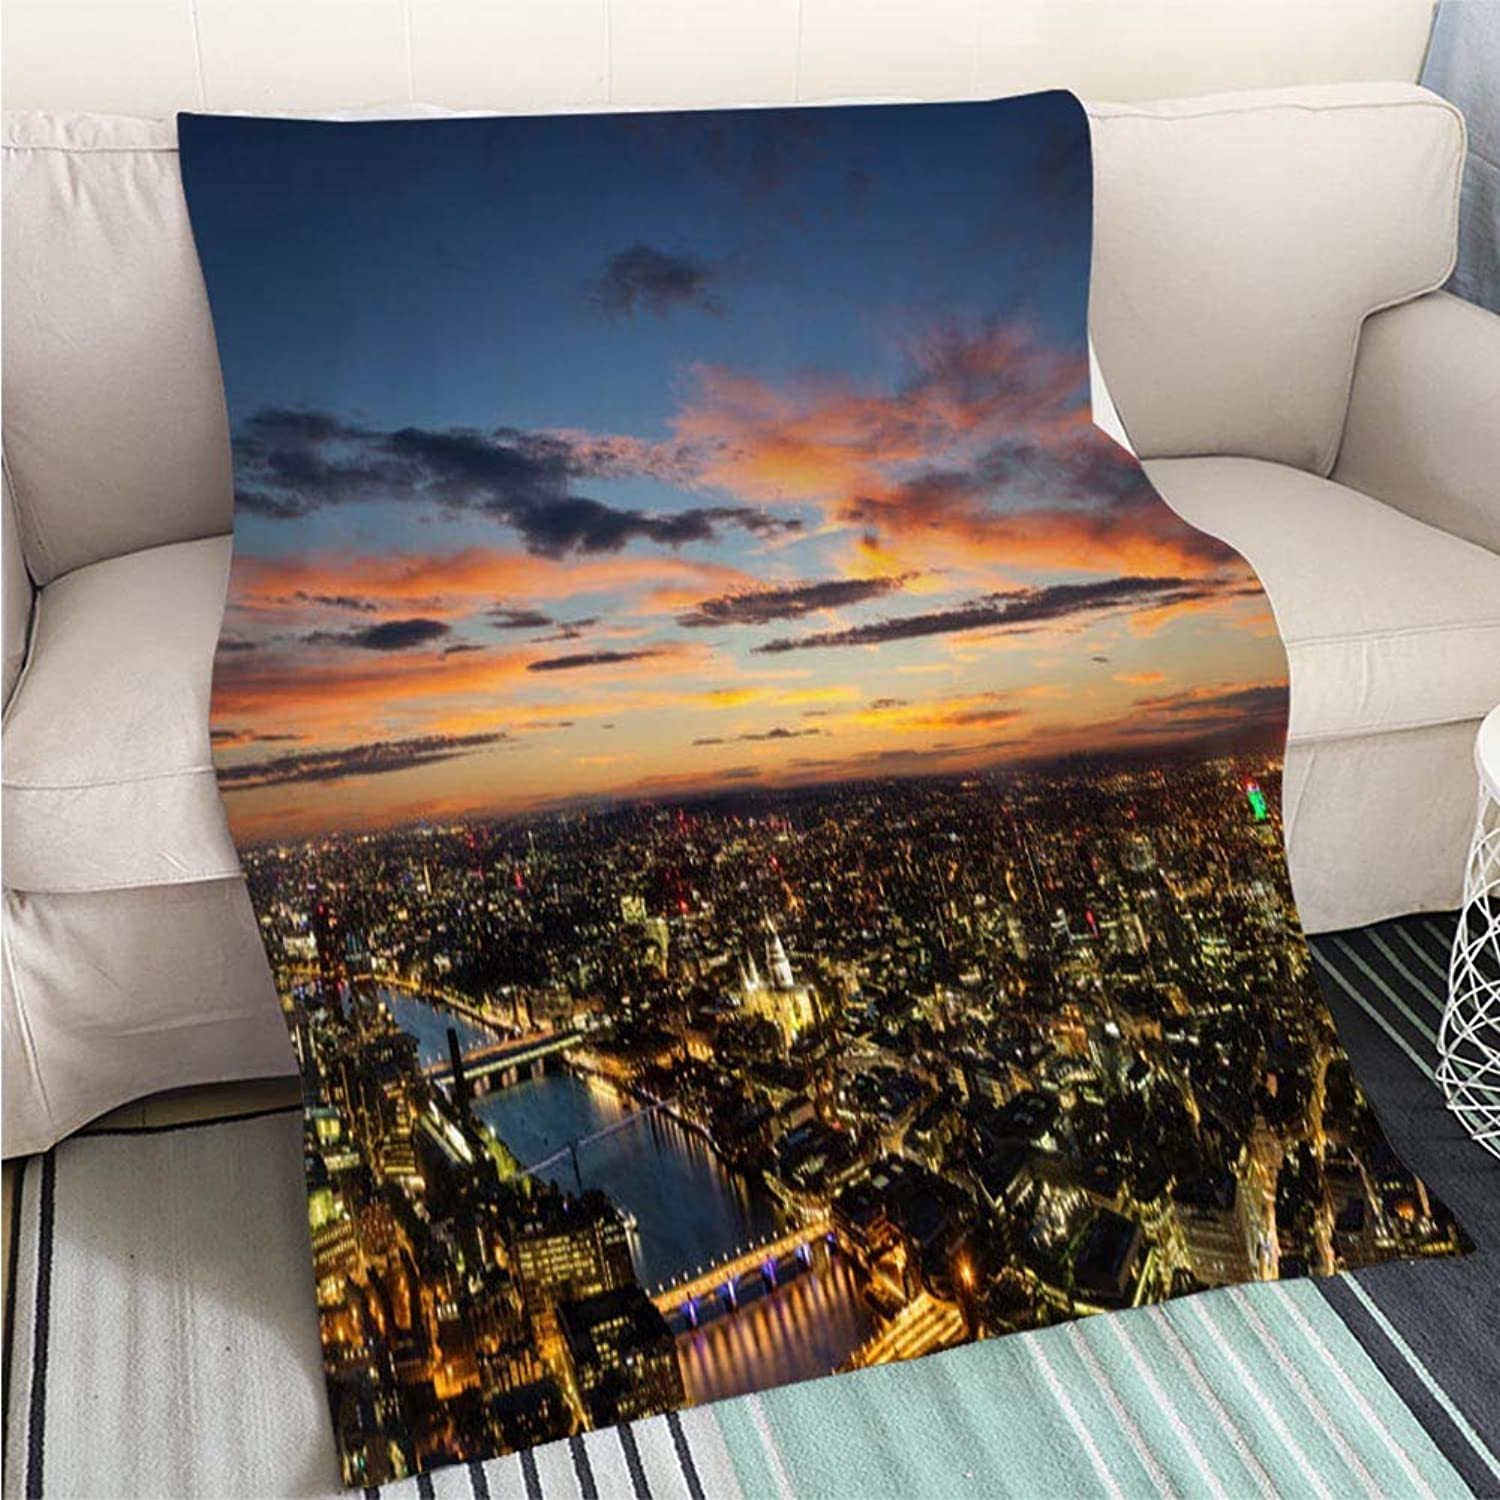 Comforter Multicolor Bed or Couch Beautiful Sunset Over Old Town of City London England Hypoallergenic Blanket for Bed Couch Chair